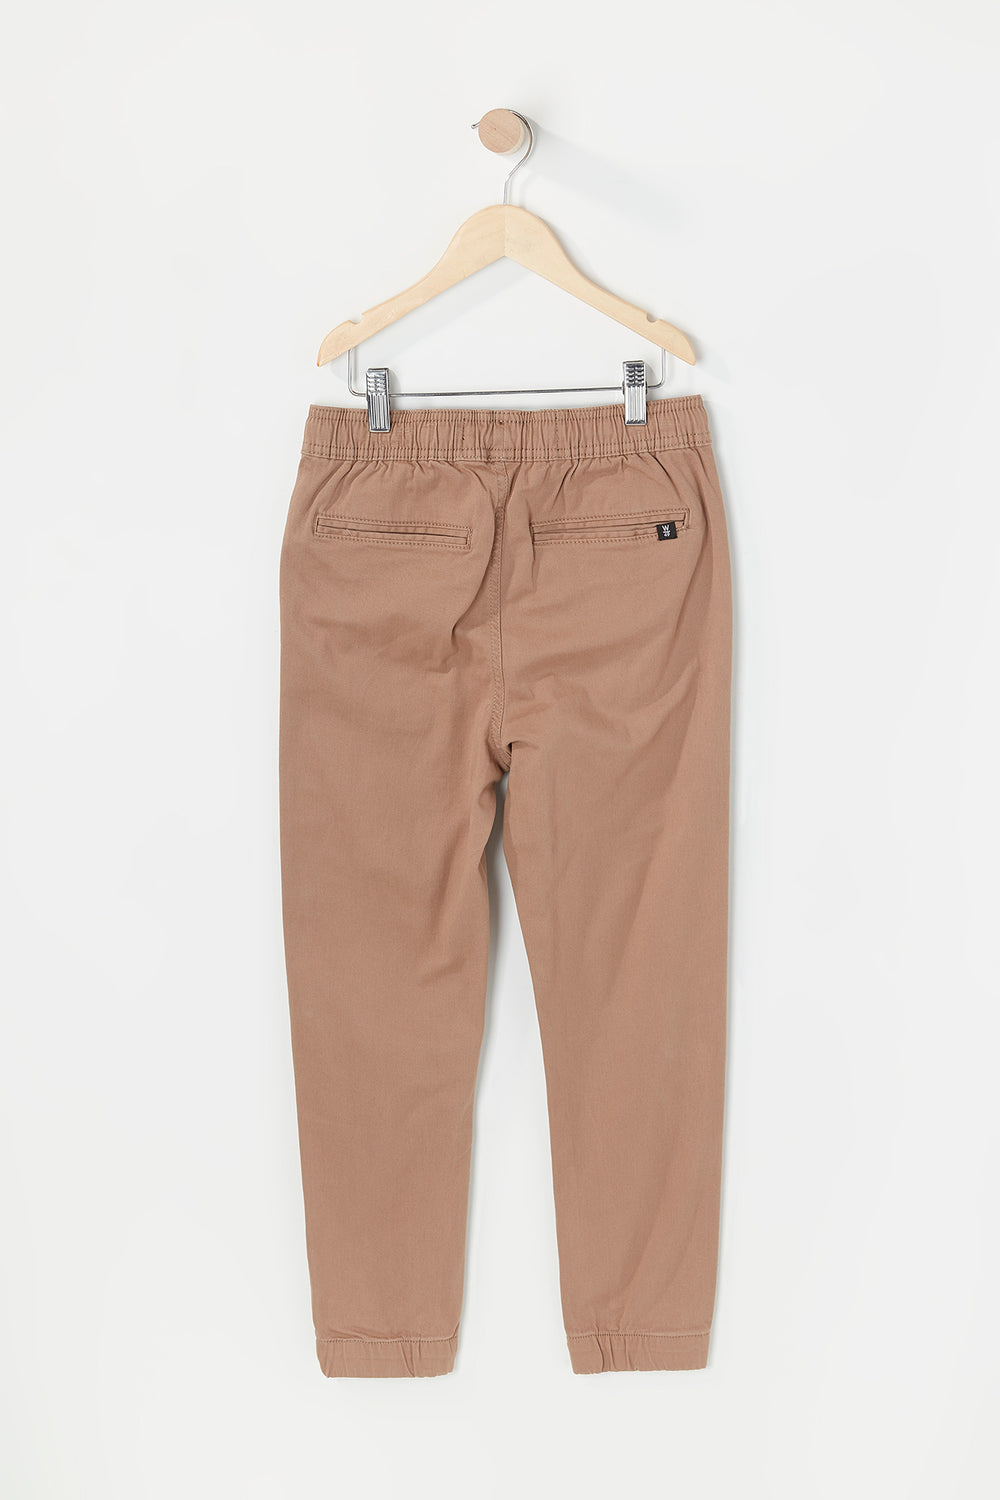 West49 Youth Jogger Sand